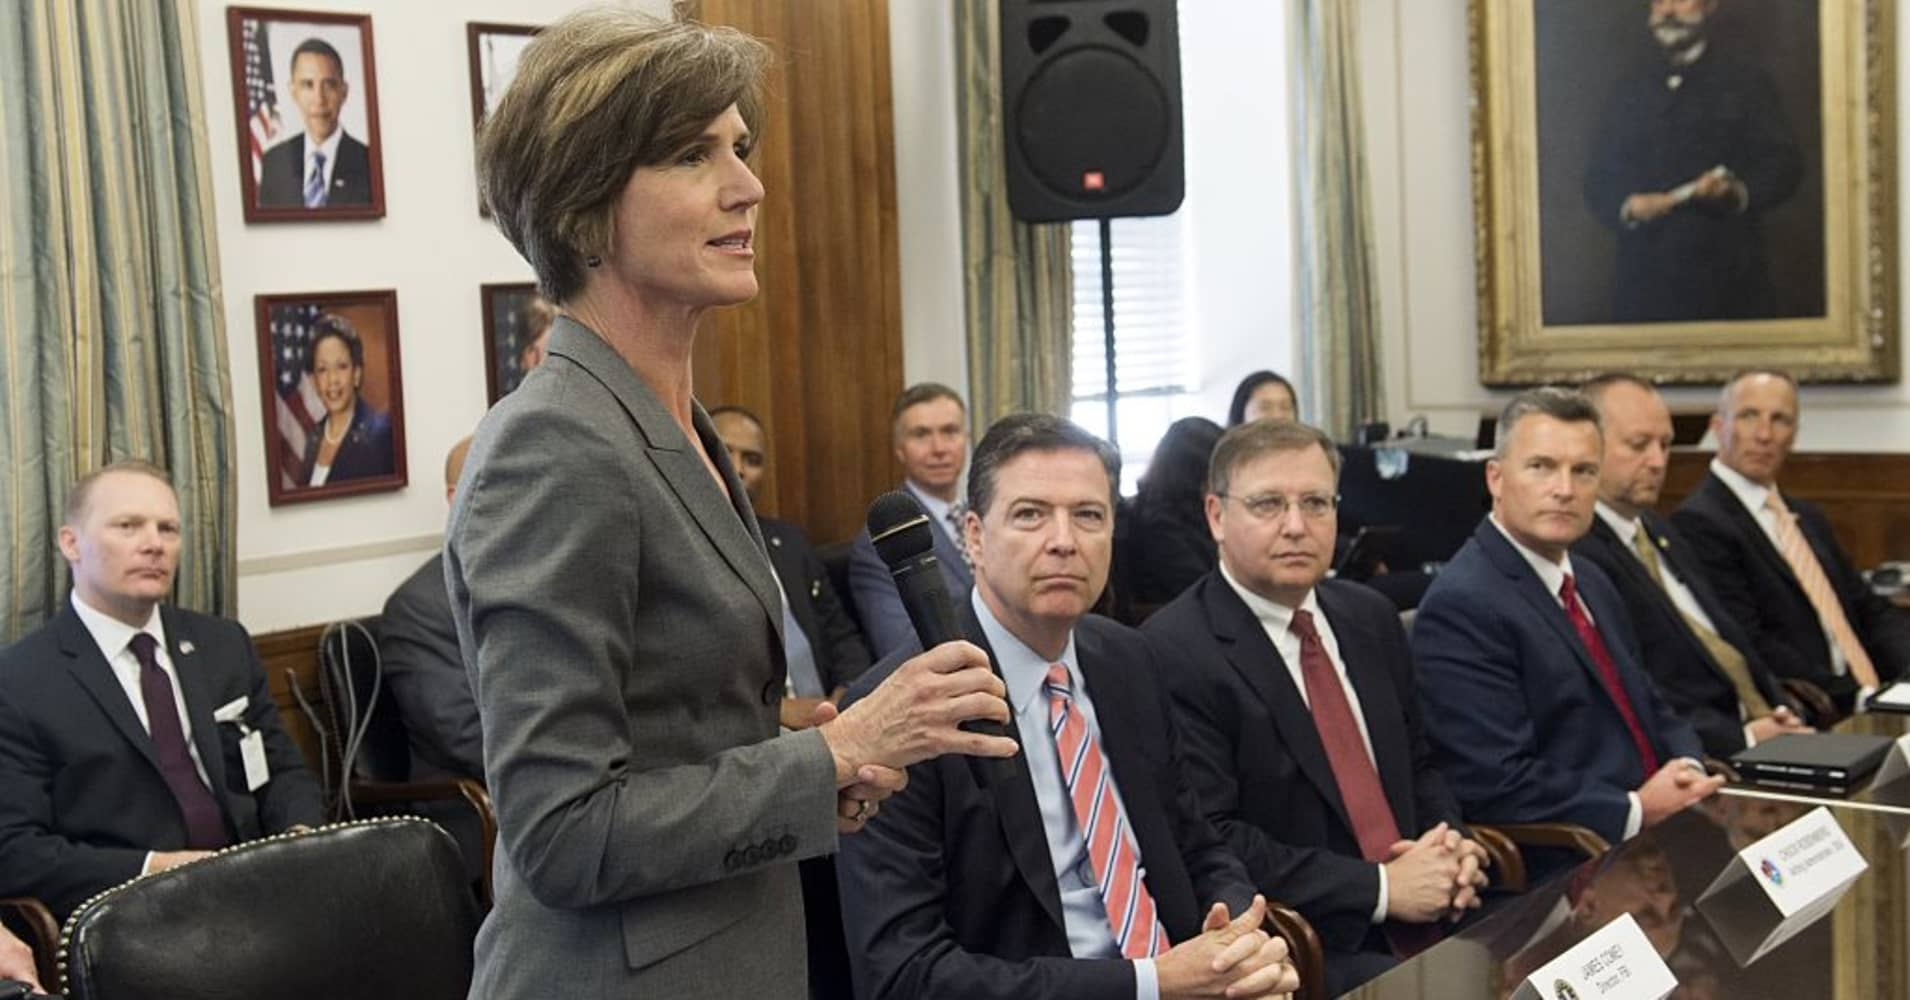 Image result for PHOTO OF SALLY YATES